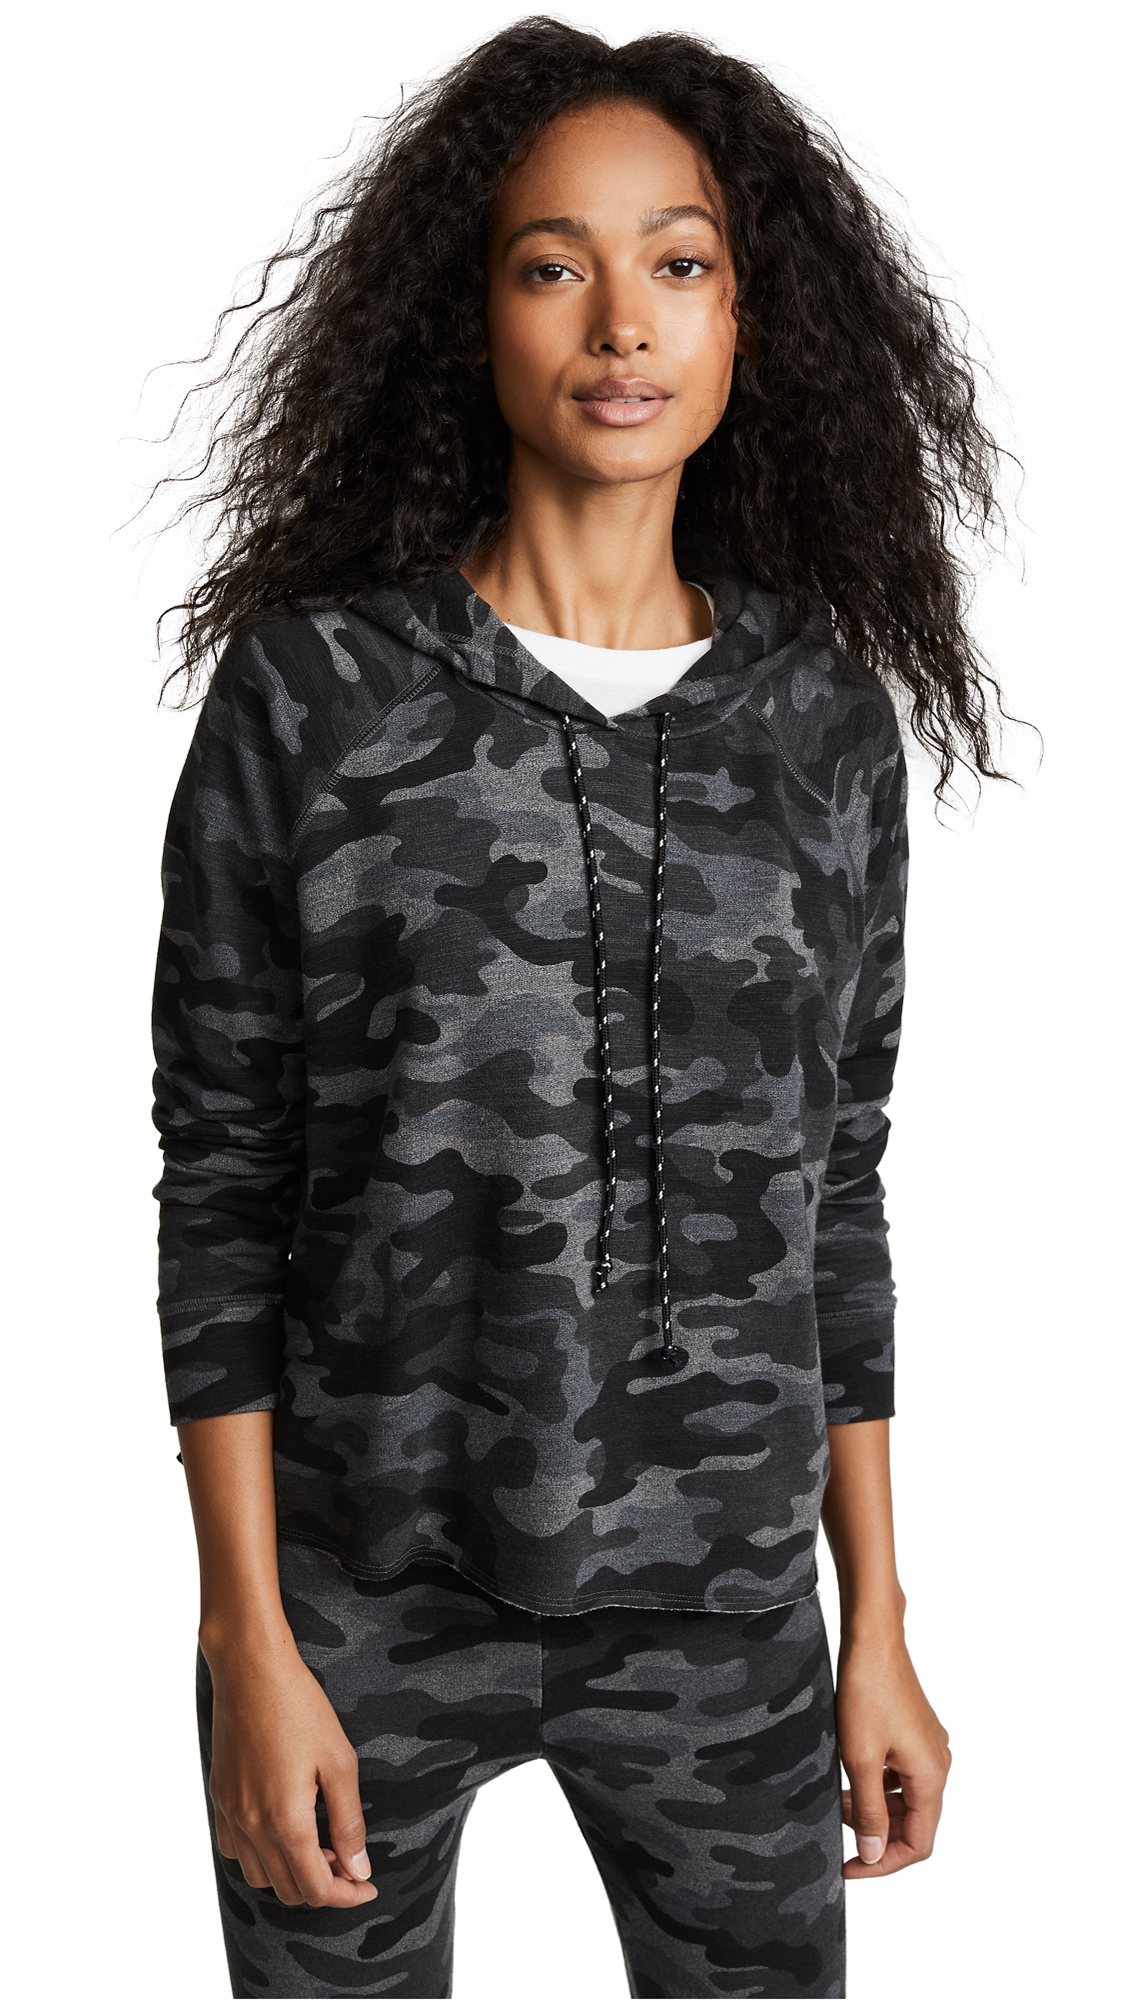 Camo-Print Cropped Pullover Hoodie in Charcoal